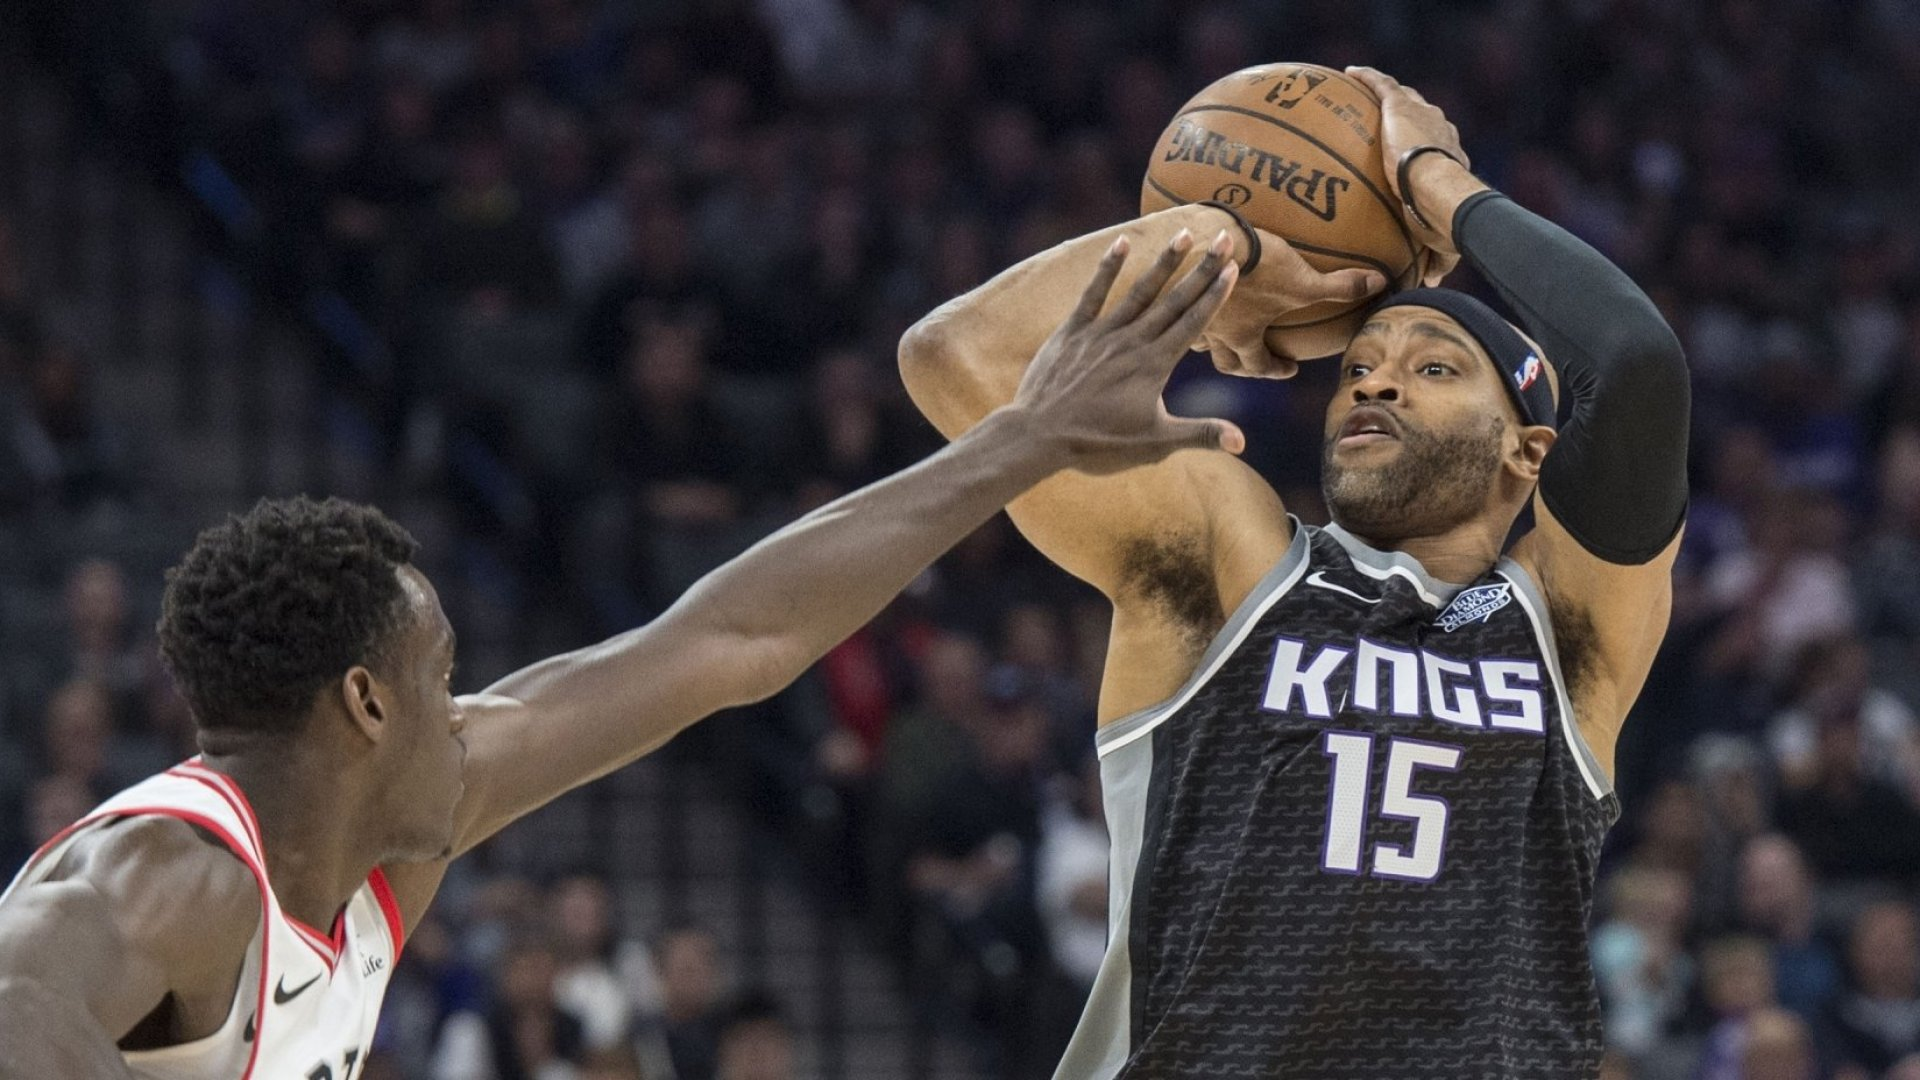 Sacramento Kings guard Vince Carter in a December game against the Toronto Raptors.